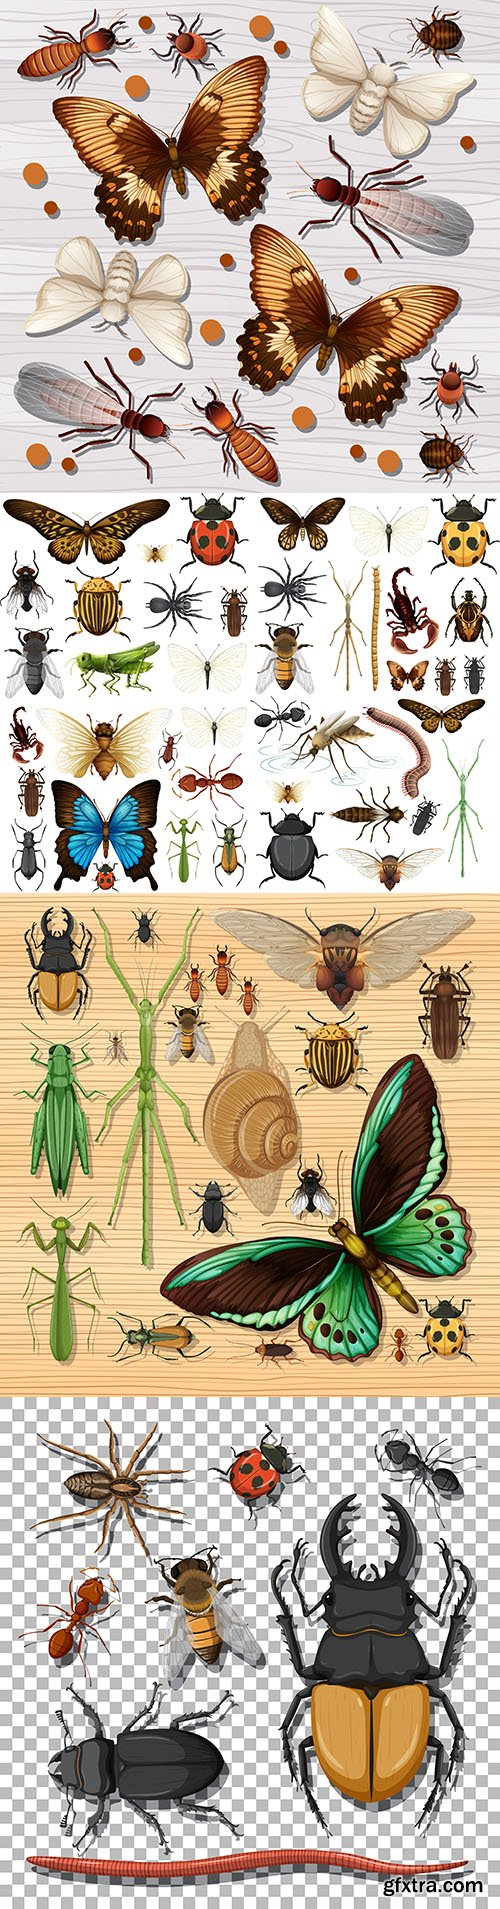 Set of different insects on background of white wooden wallpaper